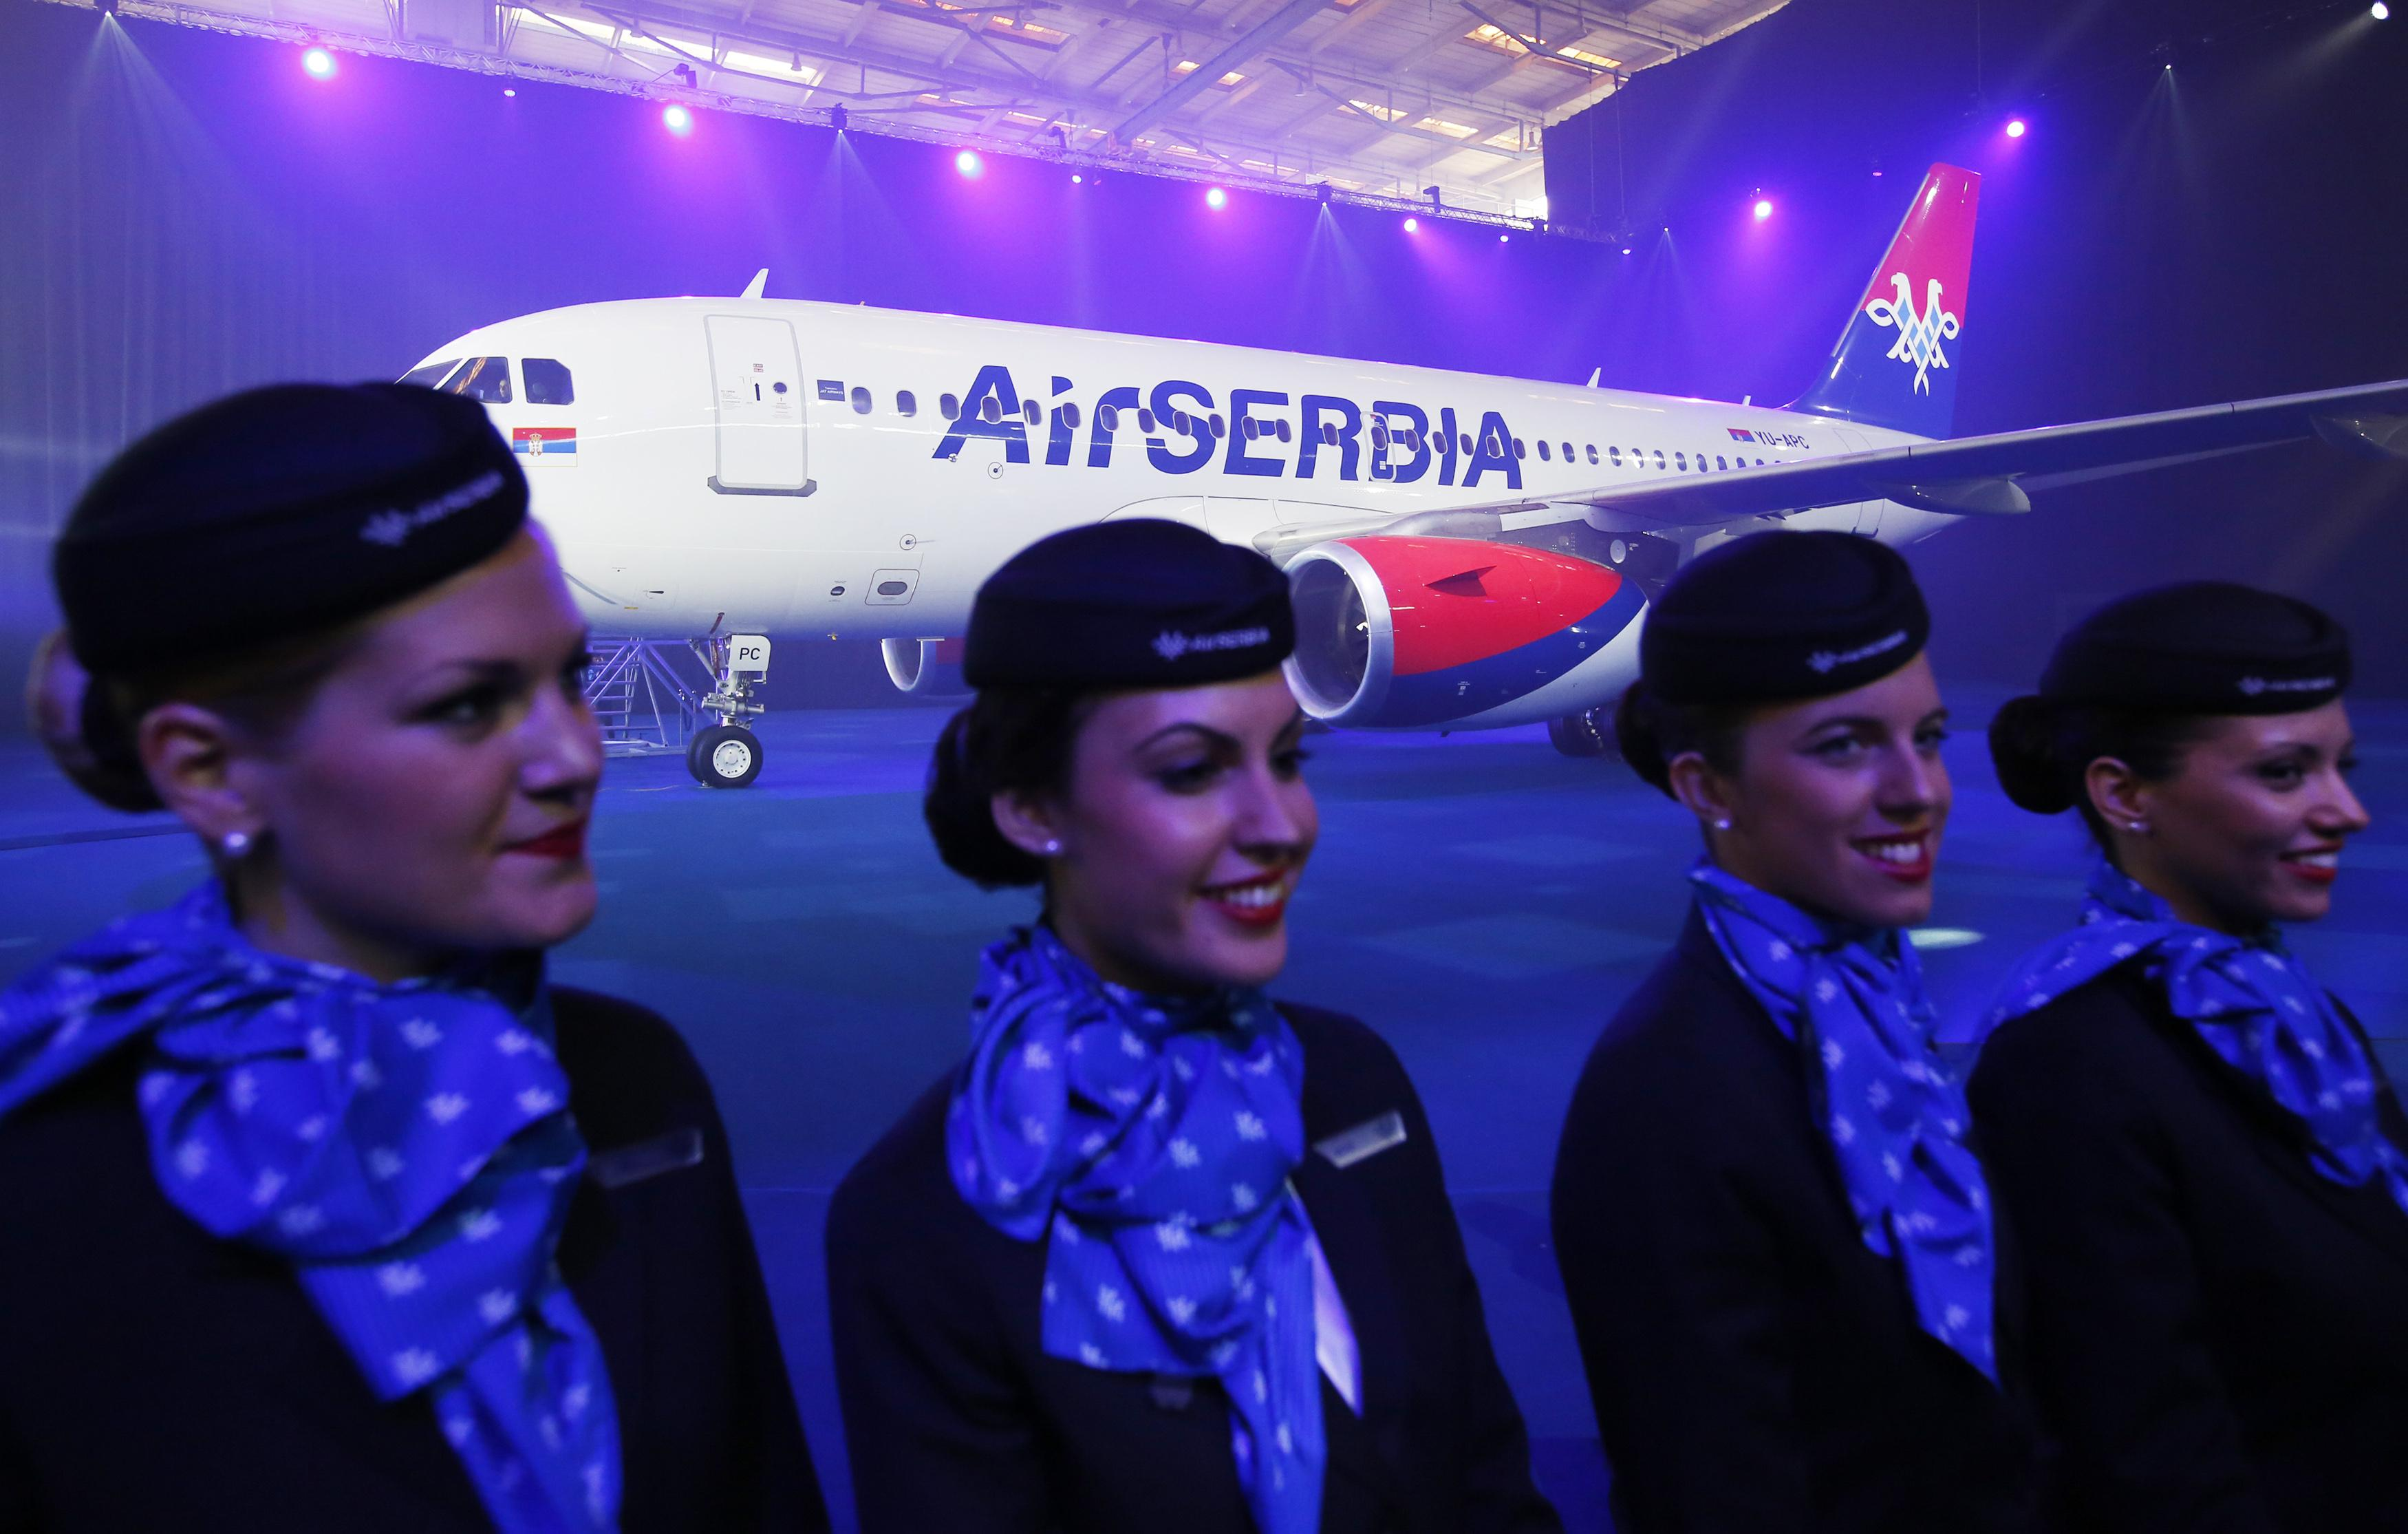 Air Serbia flight attendants